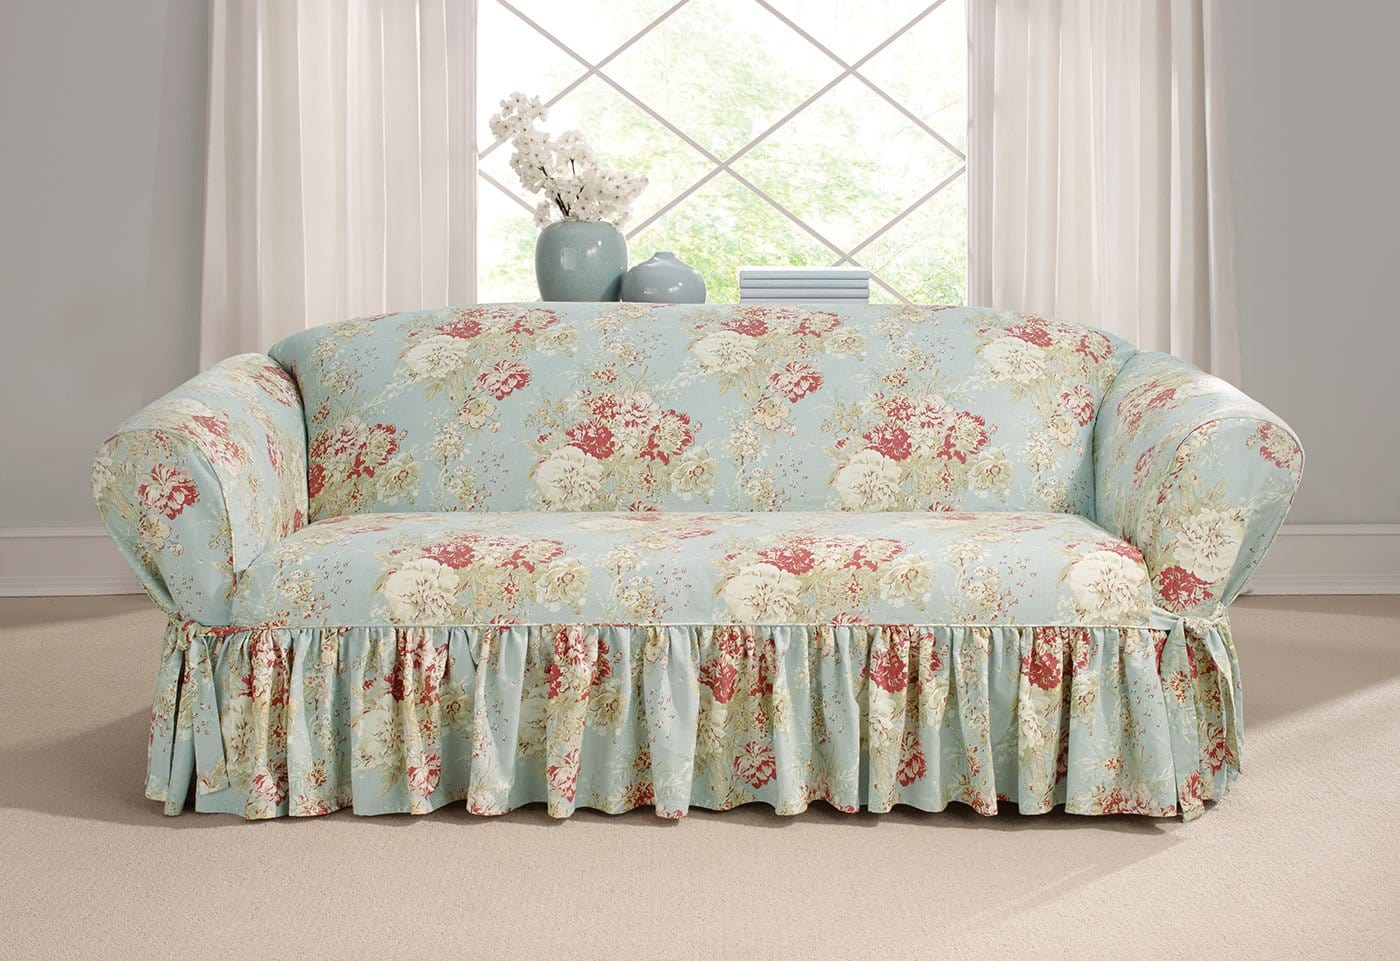 Ballad Bouquet By Waverly One Piece Sofa Slipcover Ruffled Skirt 100% Cotton Machine Washable - Sofa / Box Cushion / Robins Egg